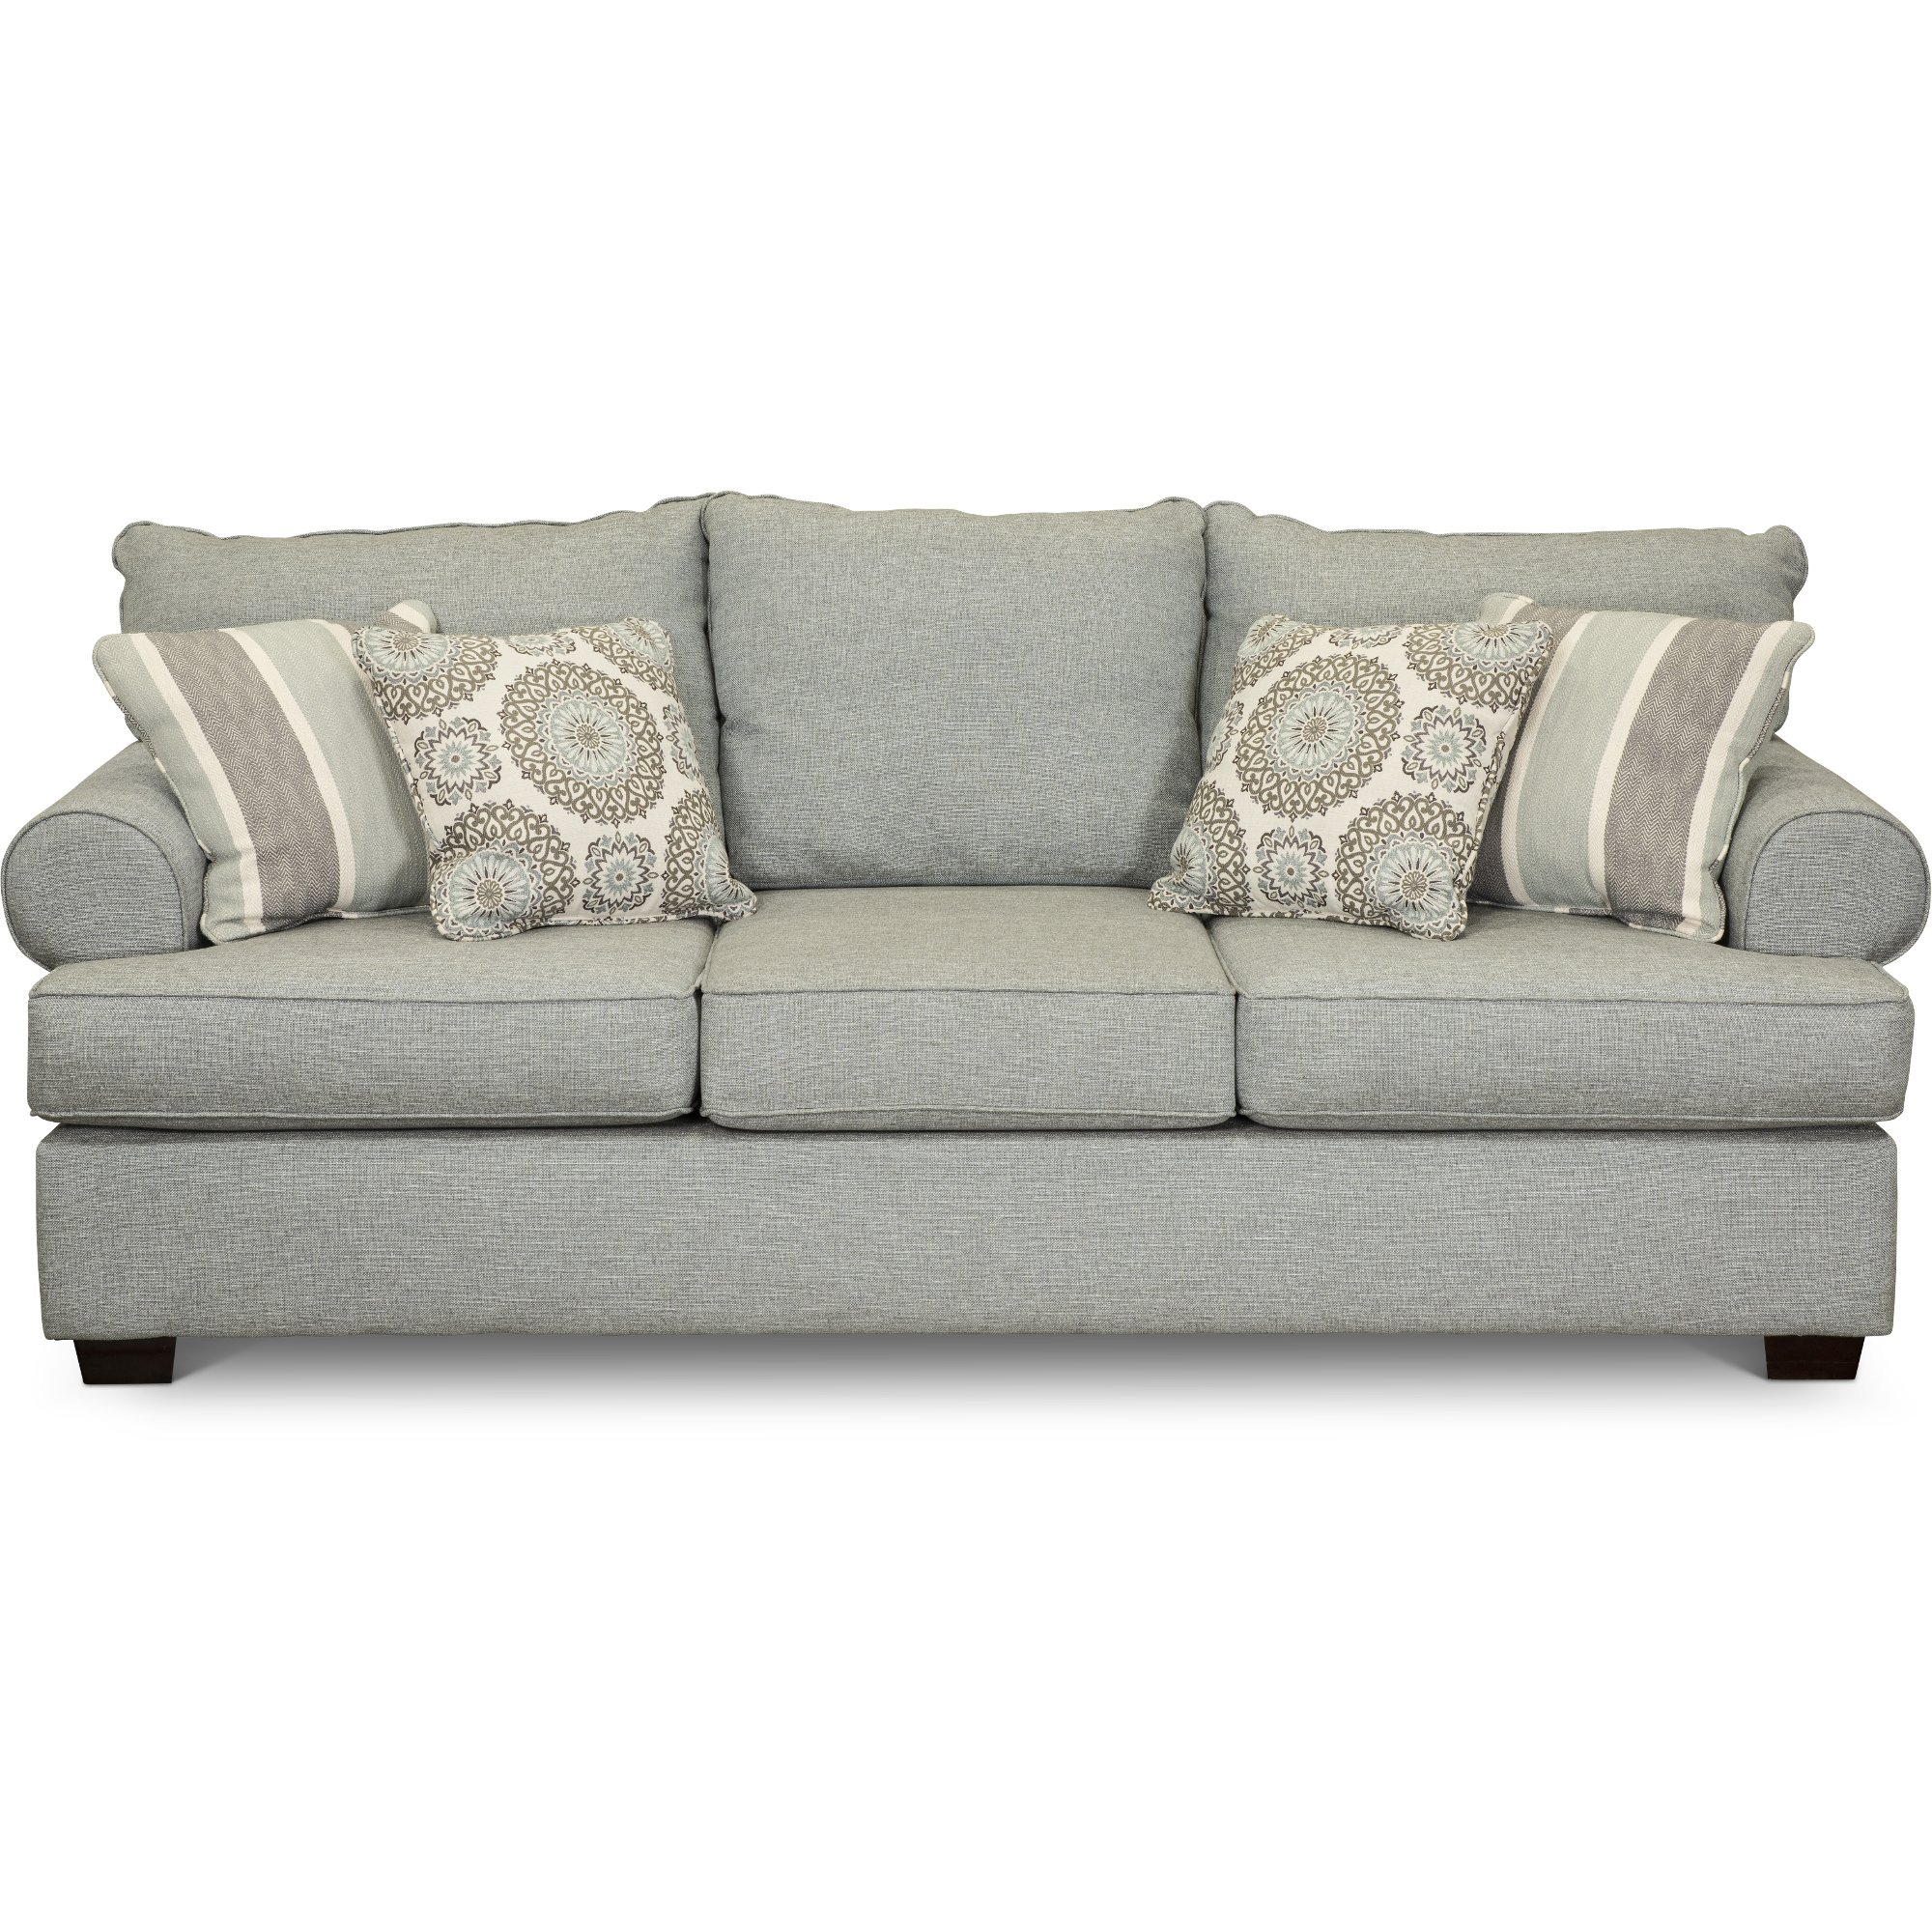 Shop couches and sofas for sale rc willey furniture store casual classic mist green sofa alison parisarafo Images